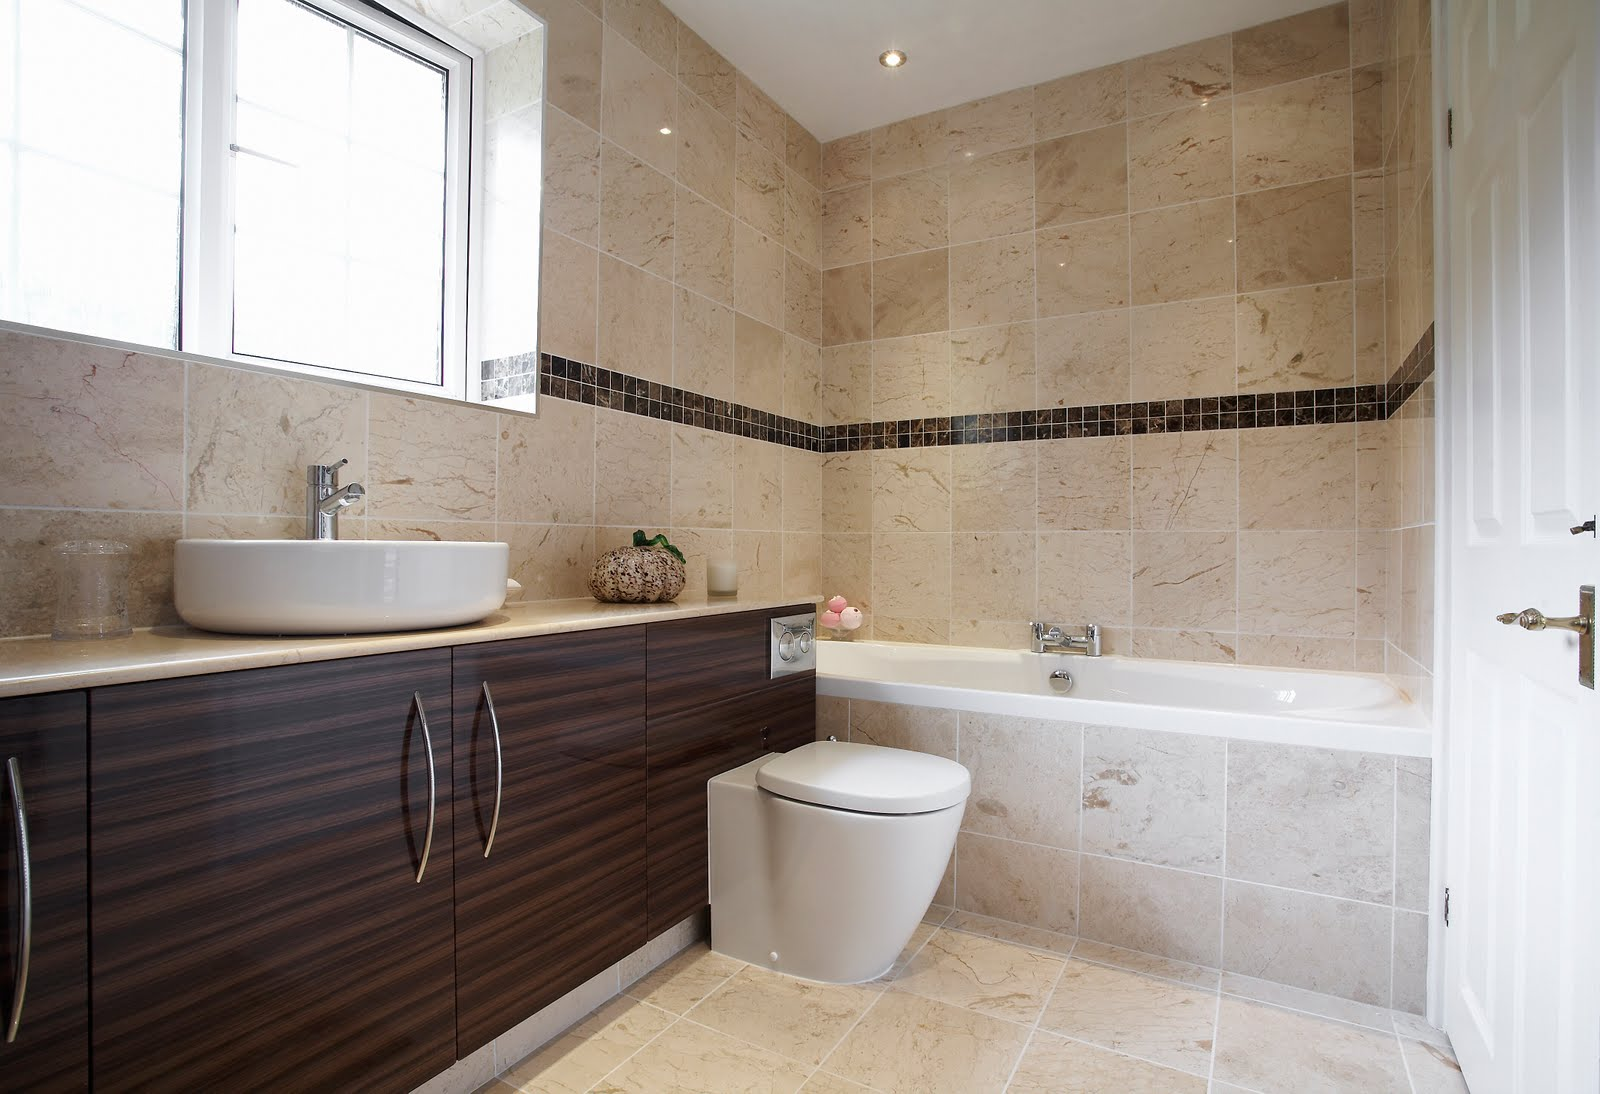 Cymru kitchens ltd cymru kitchens bathrooms Bathrooms pictures